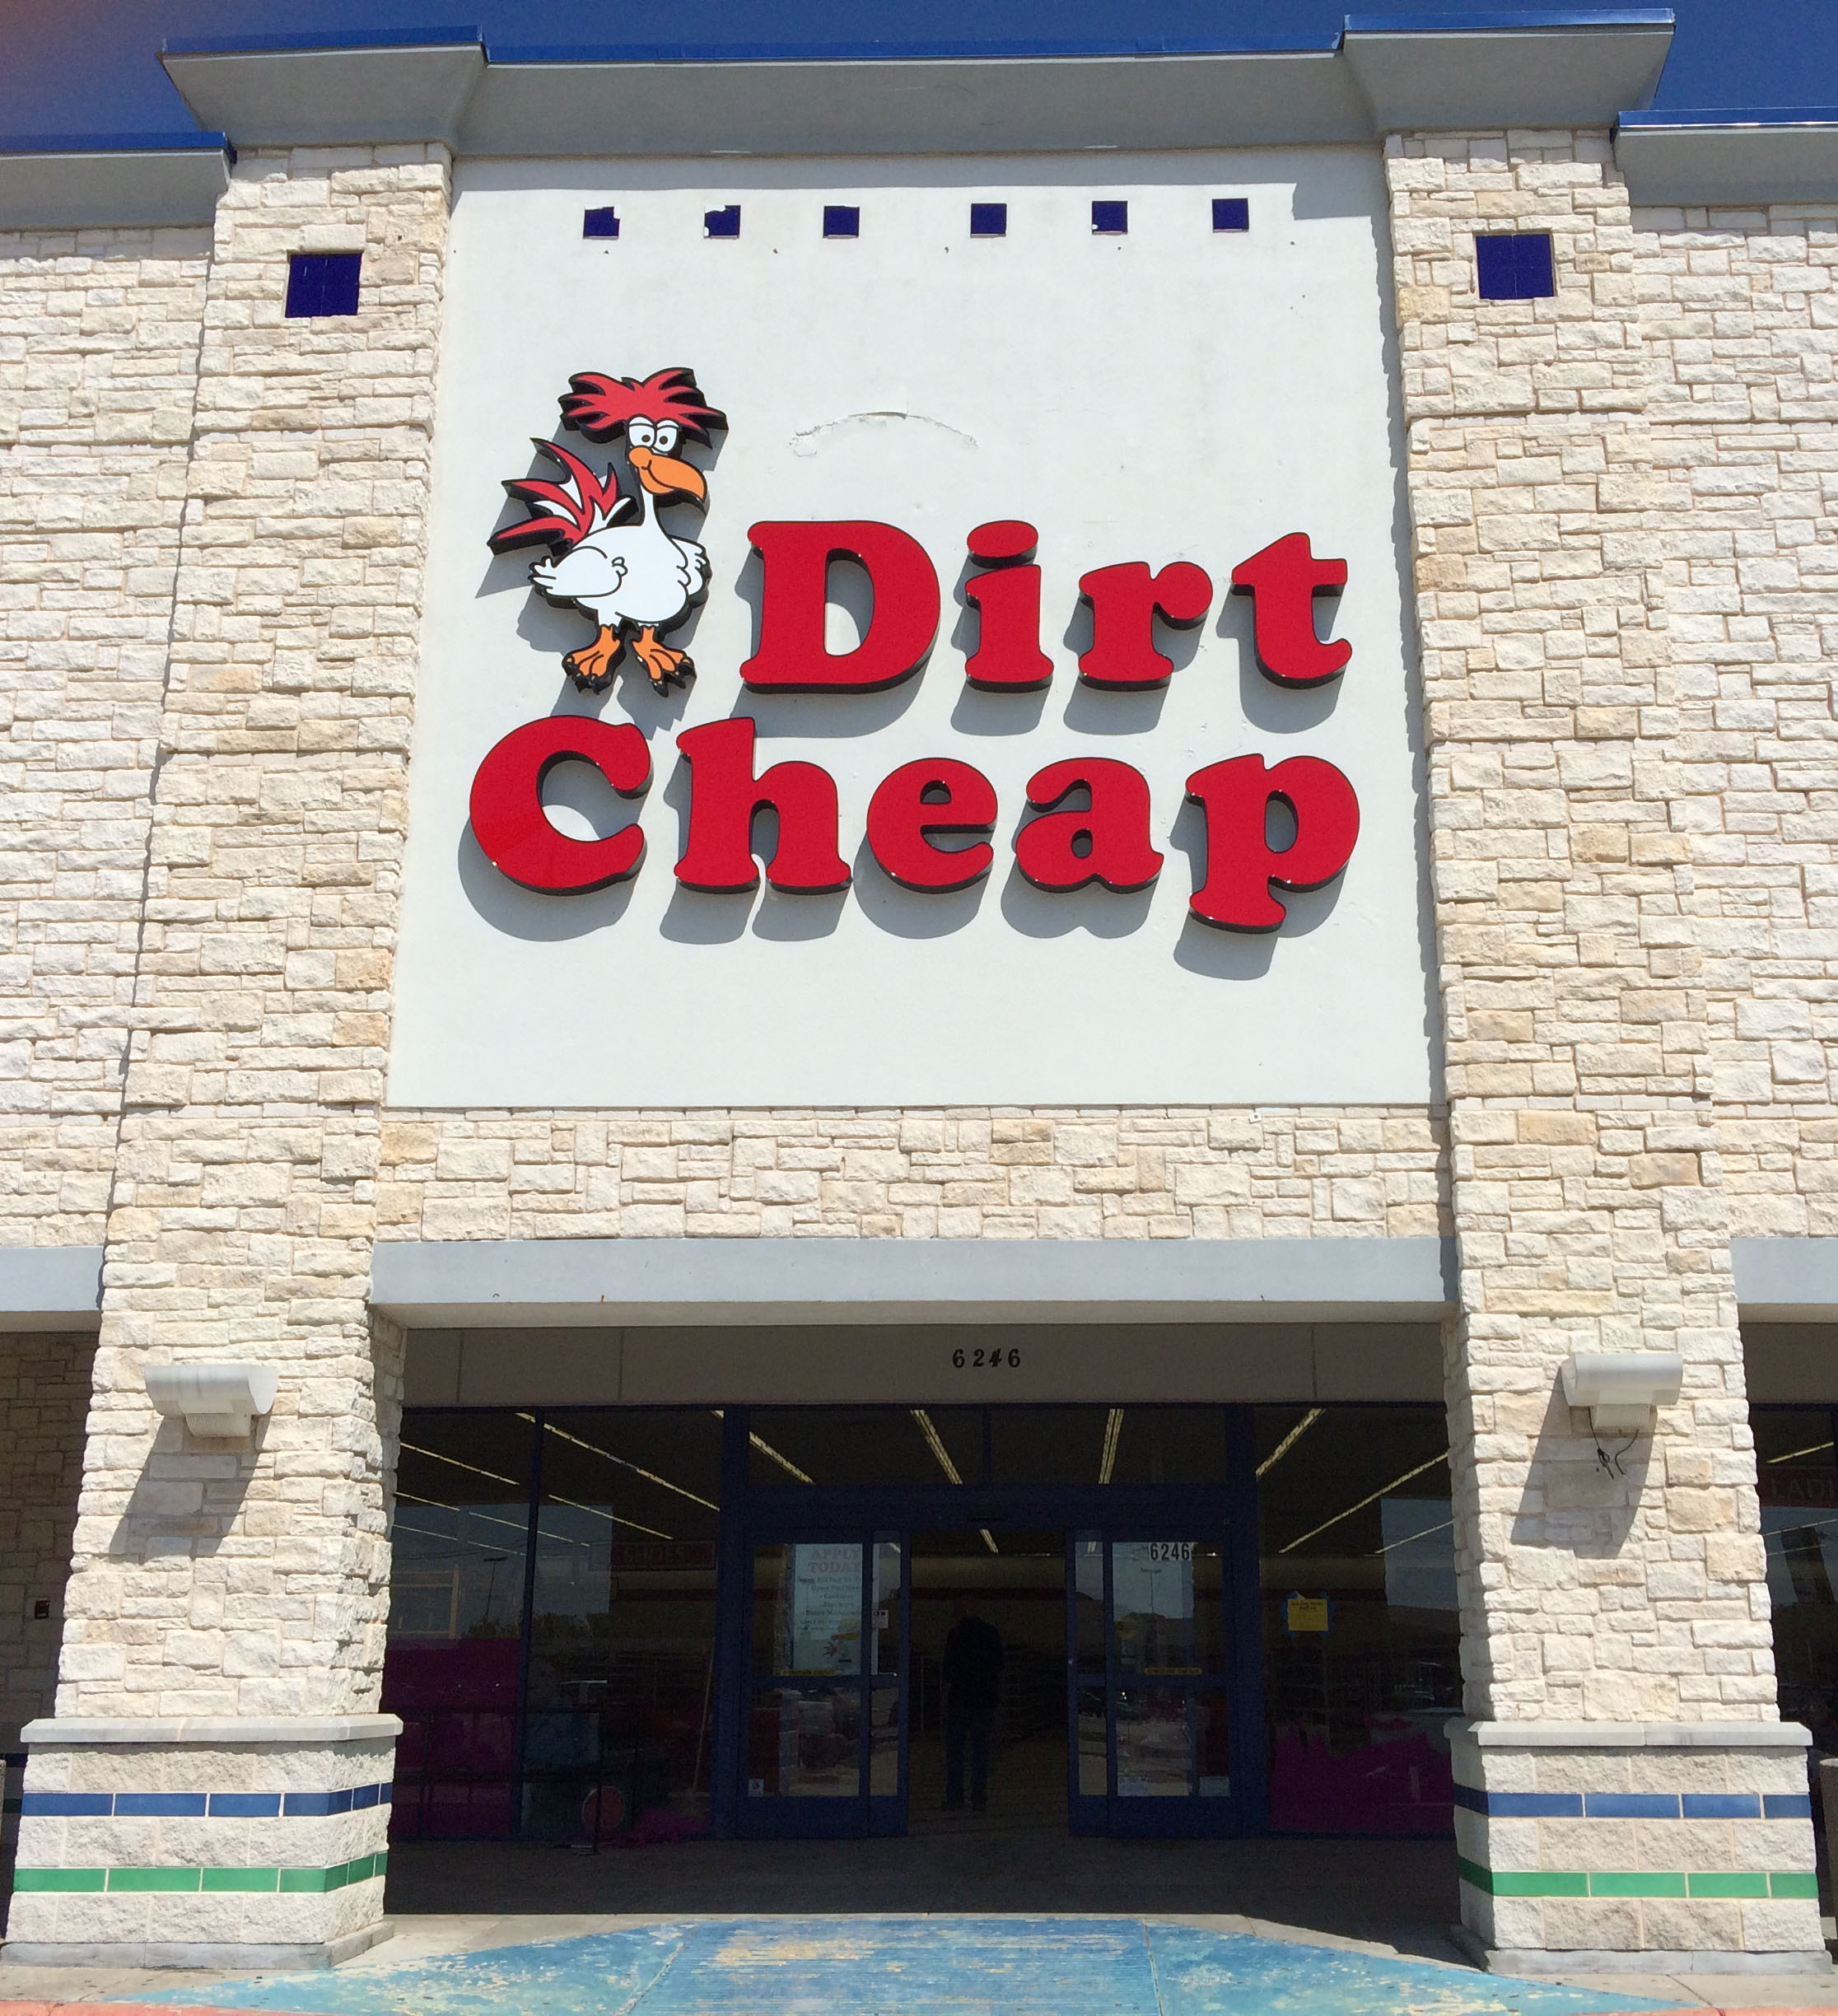 North Richland Hills Dirt Cheap